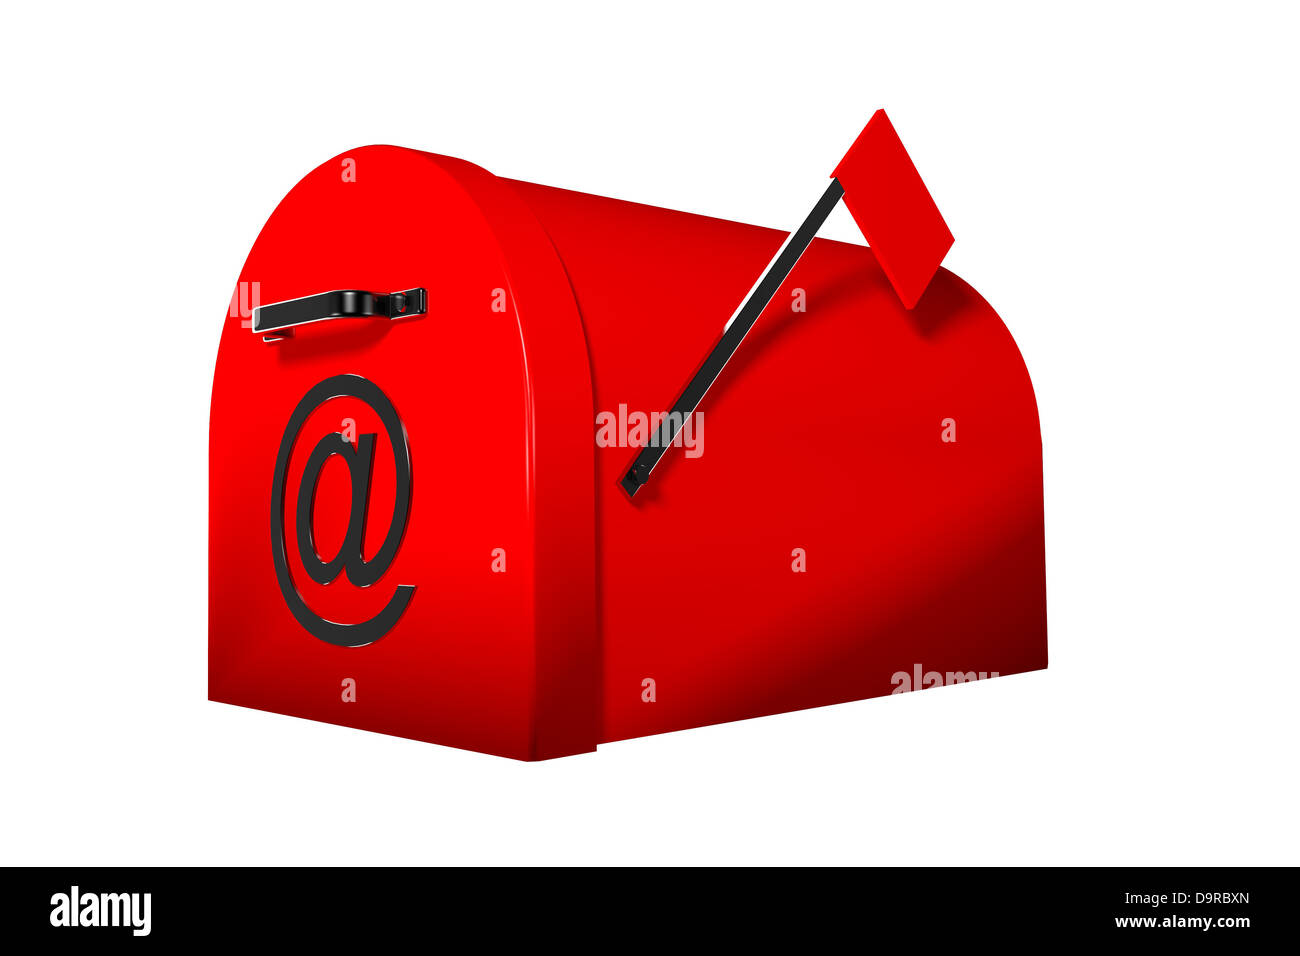 Isolated red letterbox with @ symbol on front door - Stock Image